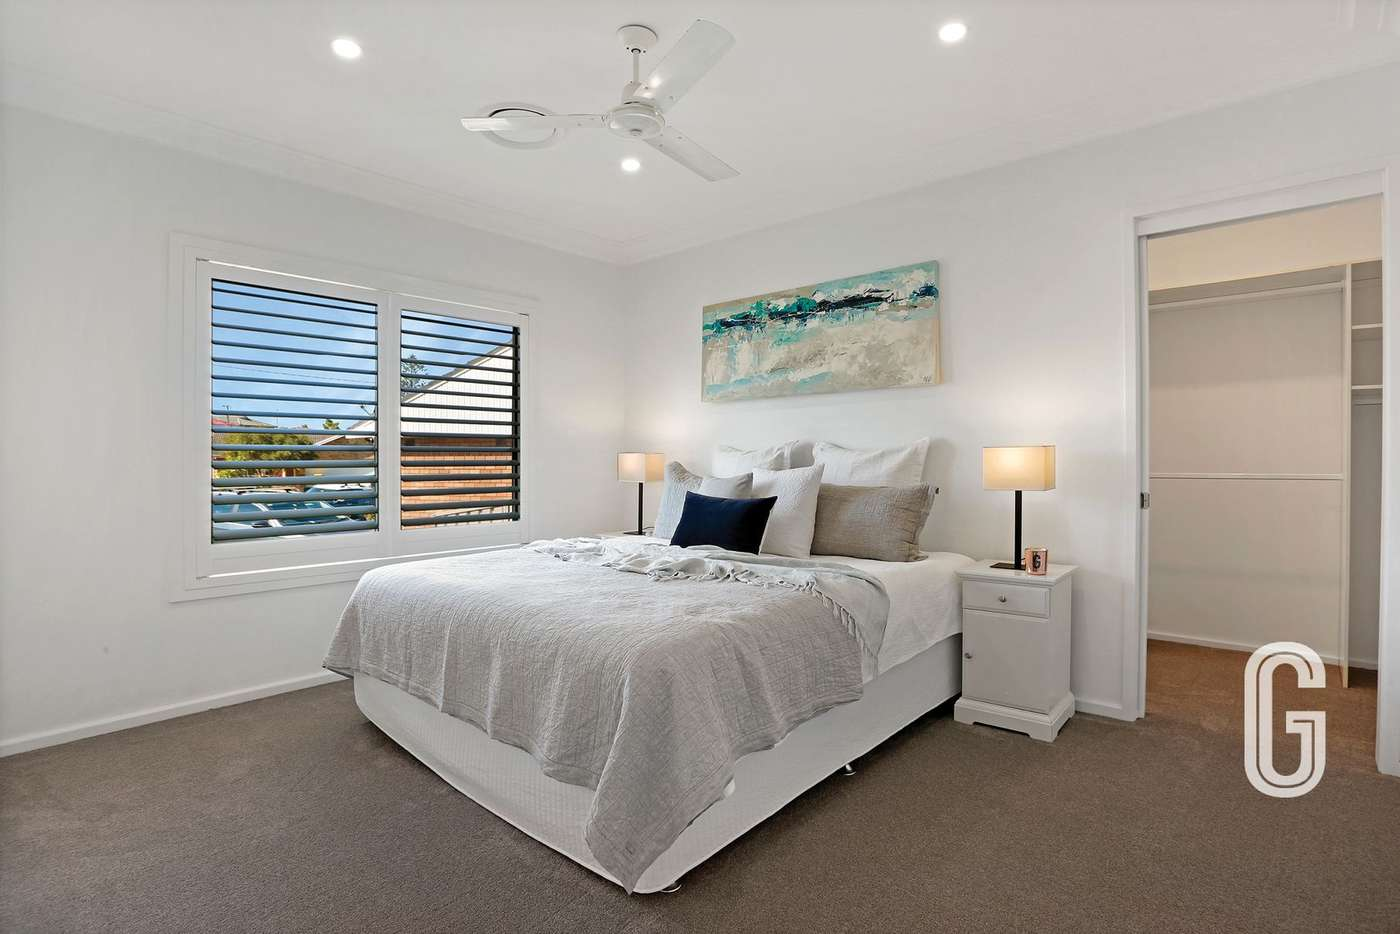 Fifth view of Homely house listing, 22 Noela Avenue, New Lambton NSW 2305